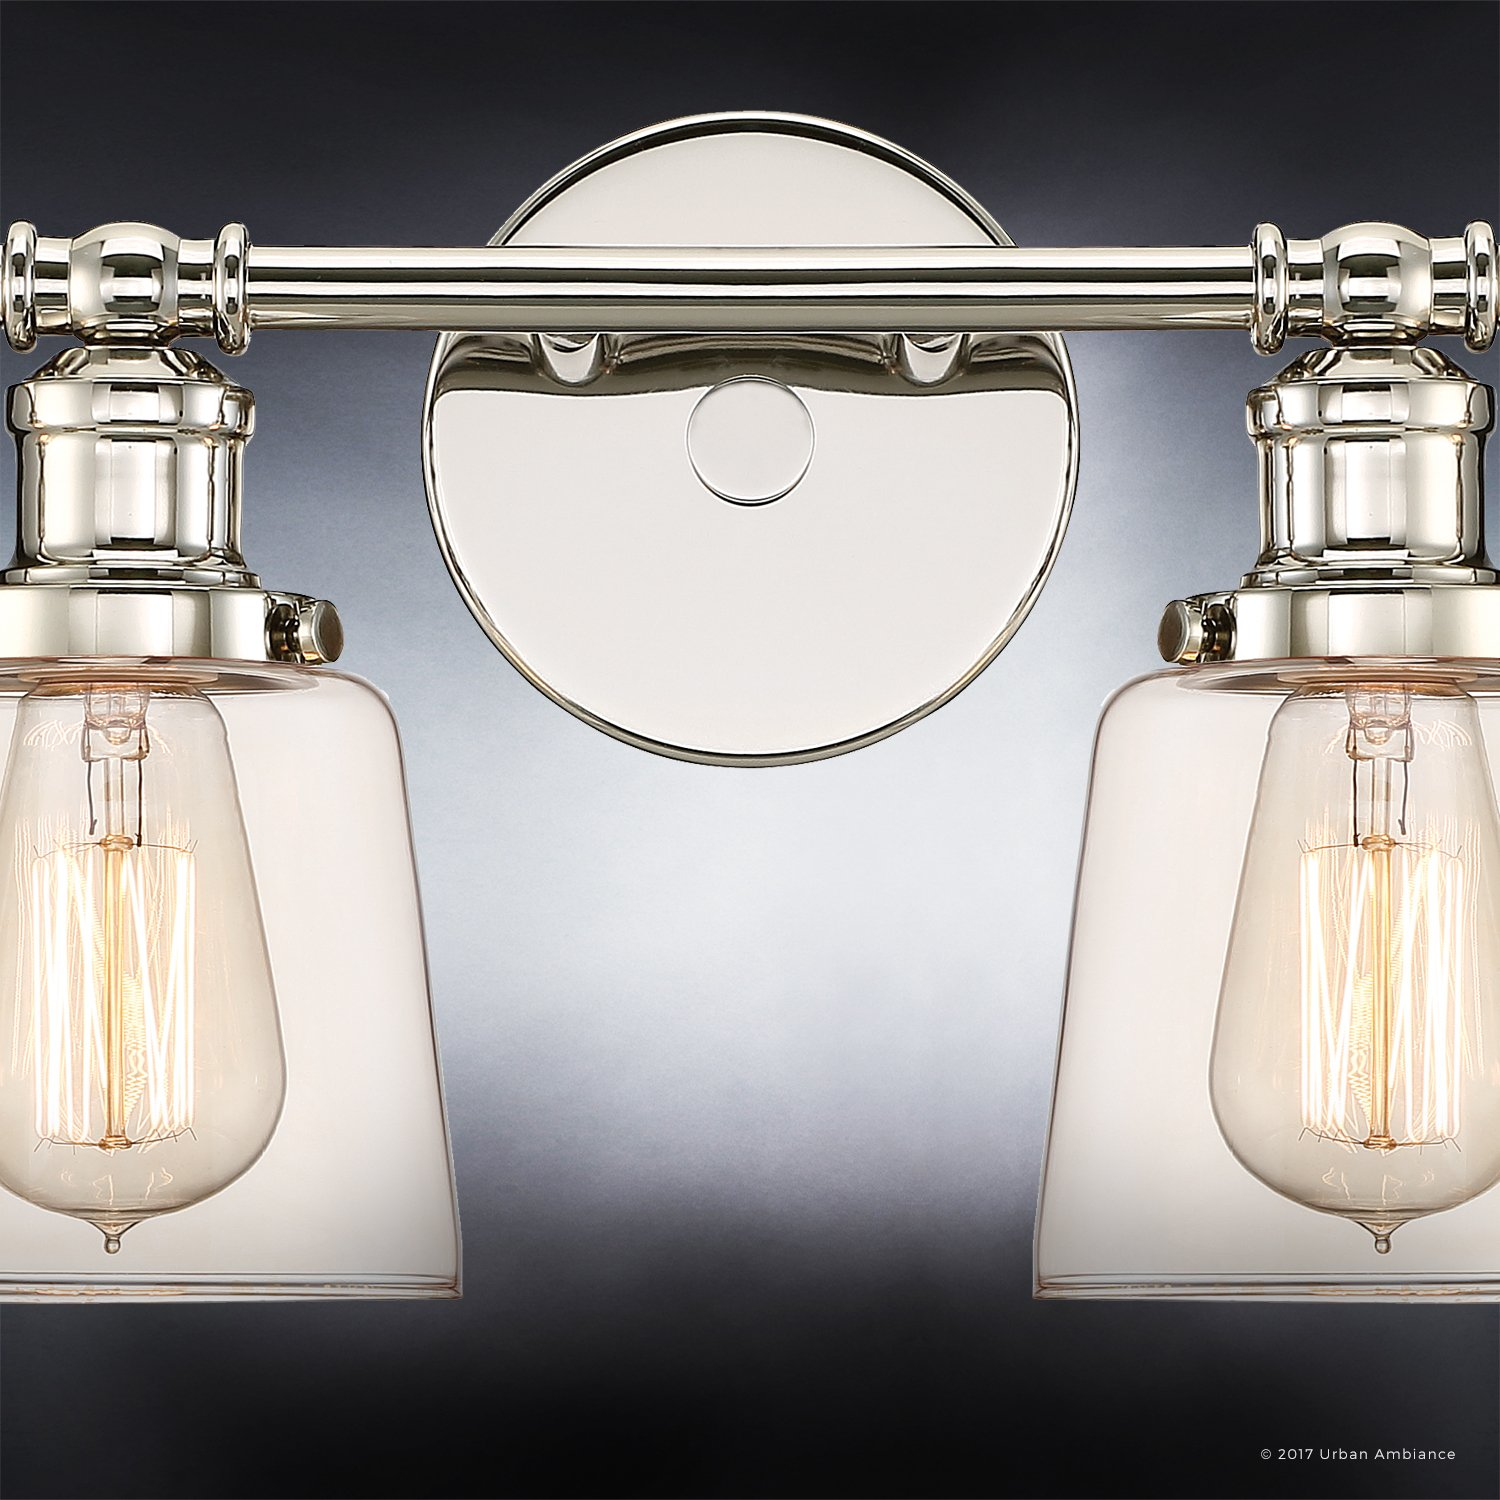 Luxury Industrial Chic Bathroom Vanity Light, Large Size: 9''H x 31.5''W, with Modern Style Elements, Nostalgic Design, Polished Nickel Finish and Light Champagne Glass, UQL2682 by Urban Ambiance by Urban Ambiance (Image #6)